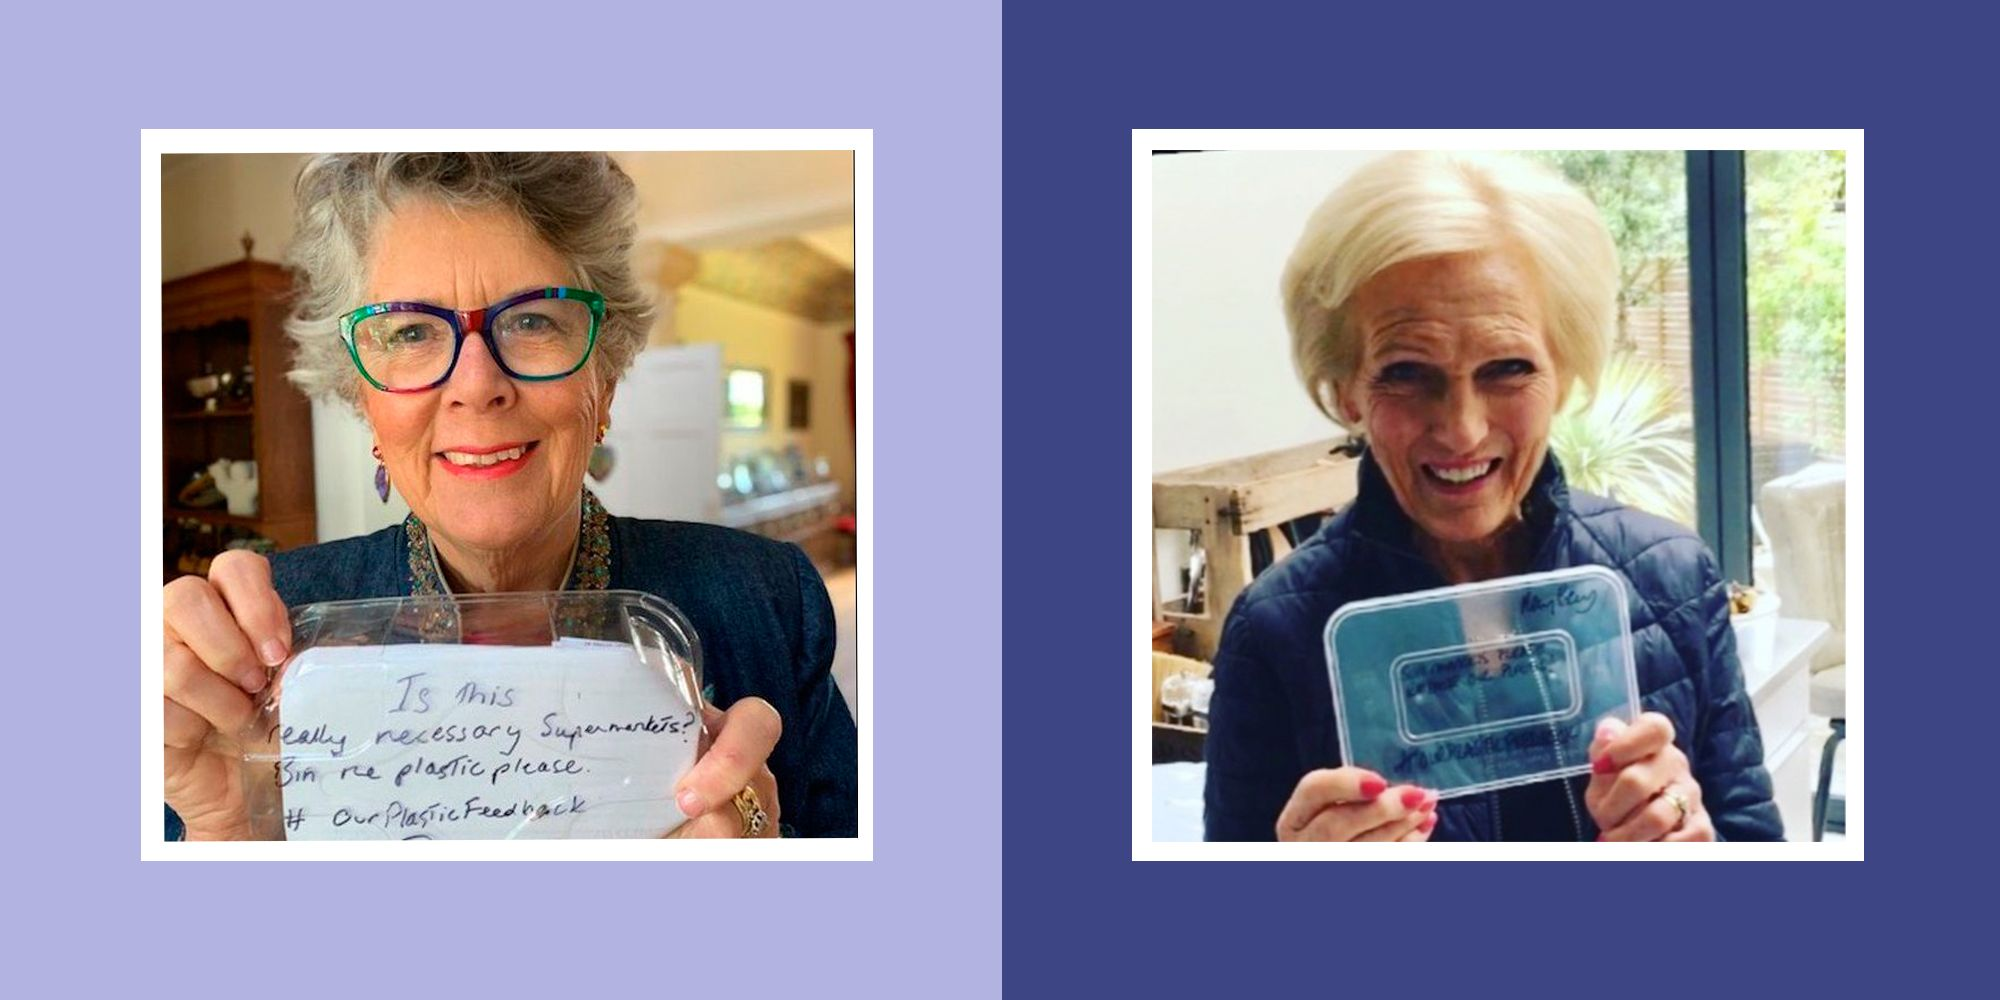 #OurPlasticFeedback campaign: Sir David Attenborough, Mary Berry and Prue Leith speak out